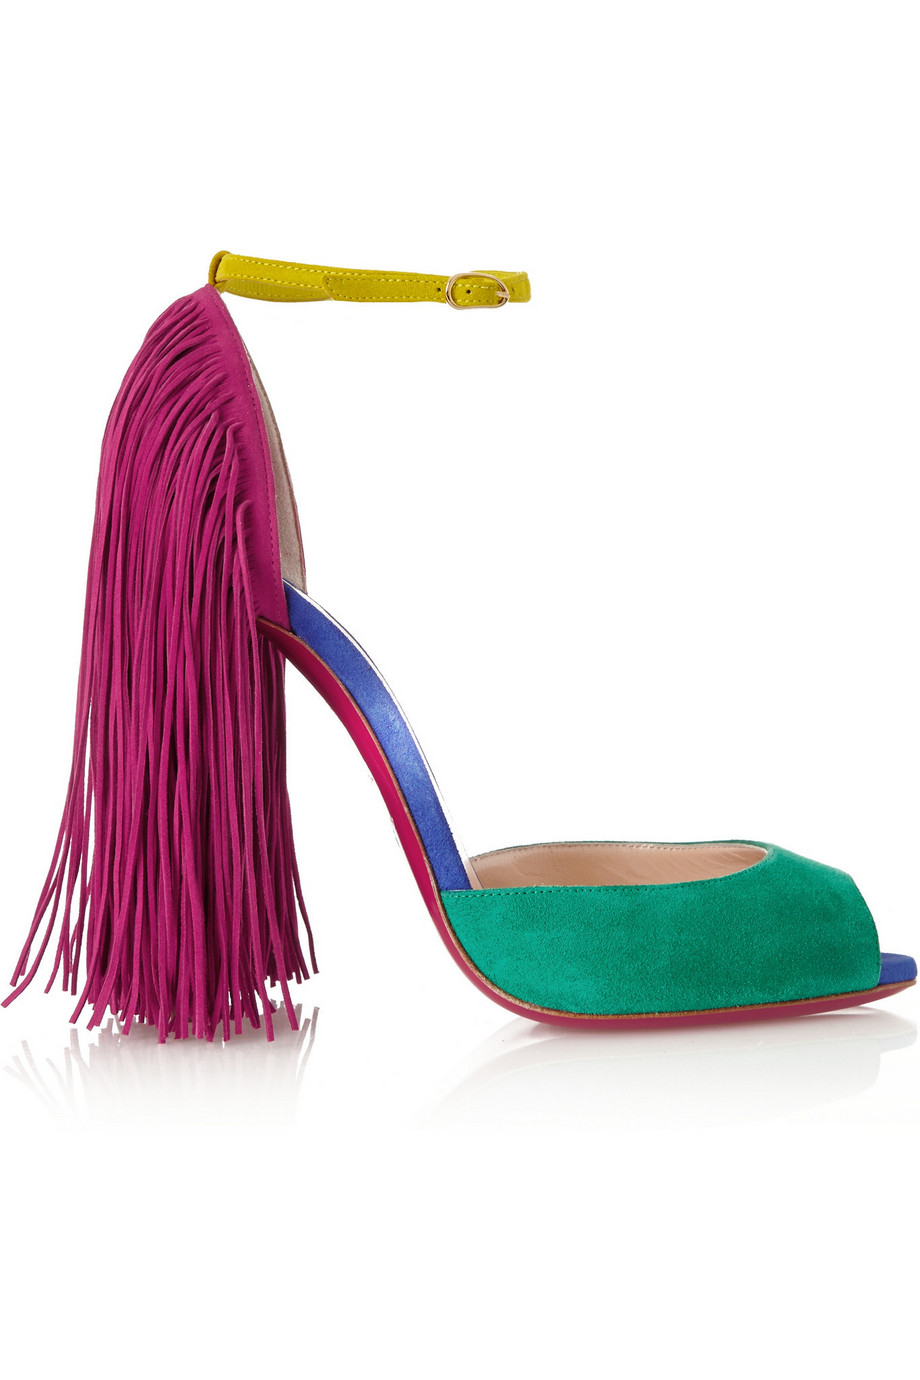 Christian Louboutin Otrot 120 Fringed Color-Block Suede Sandals, Emerald/Fuchsia, Women's US Size: 6.5, Size: 37